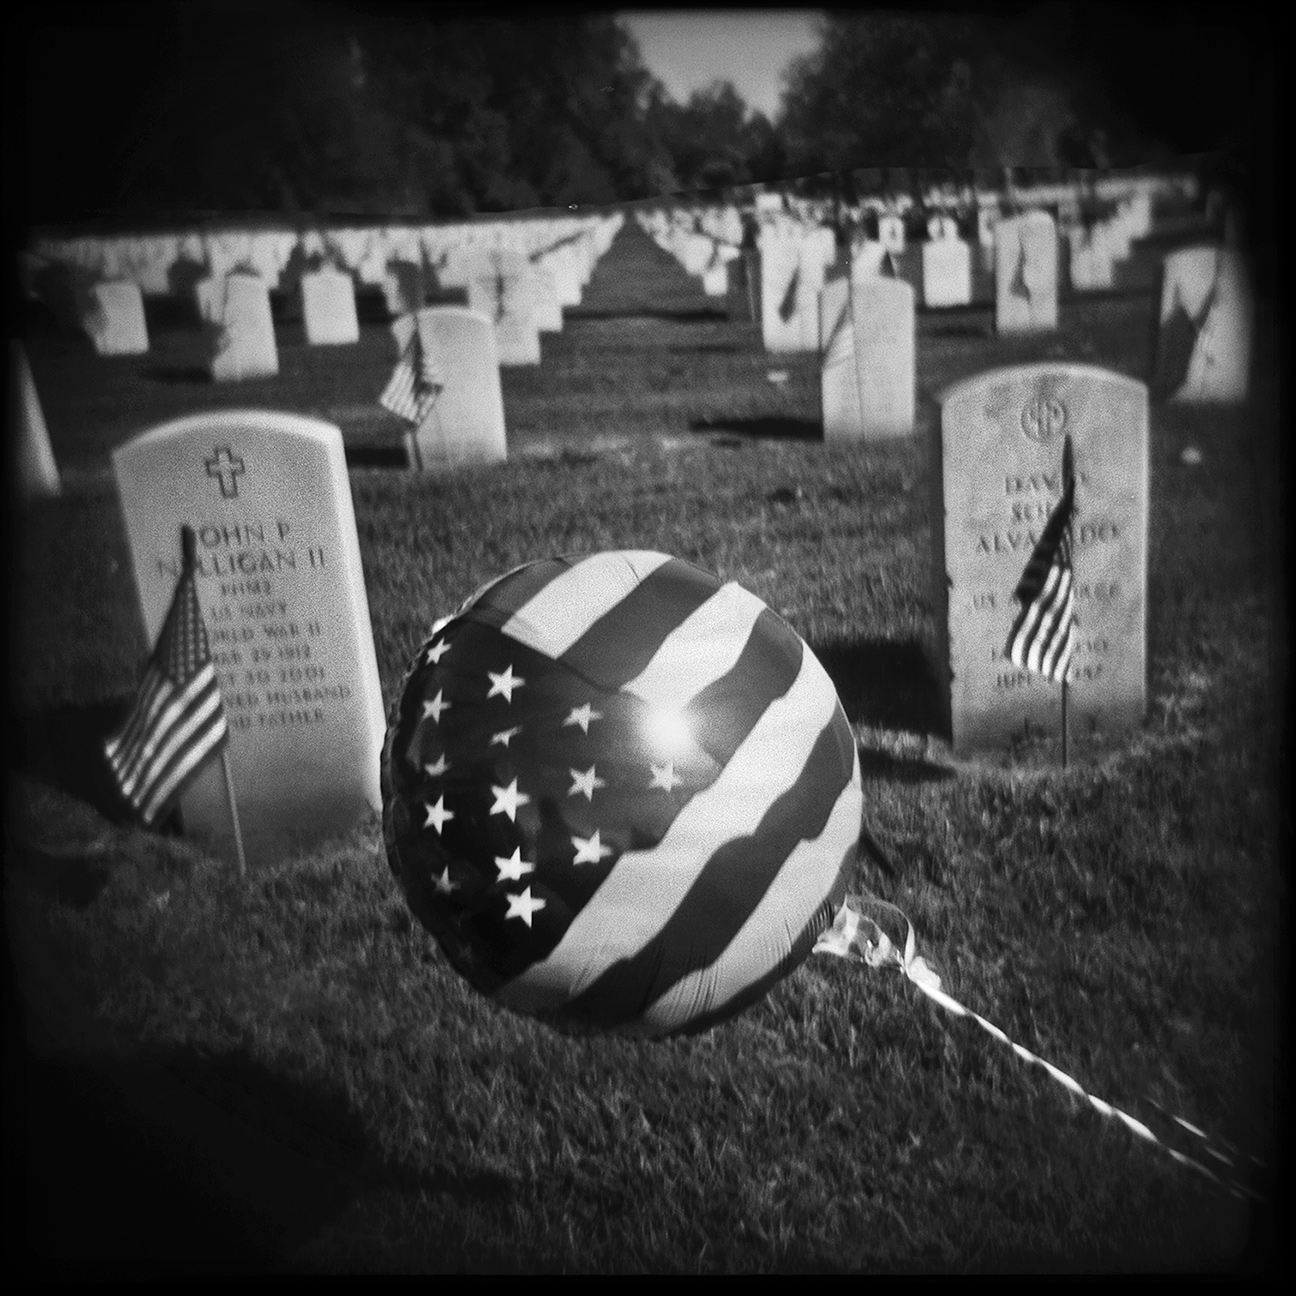 New-LA-Holga-July-2008-7-OLD-GLORY-Website-B-052515